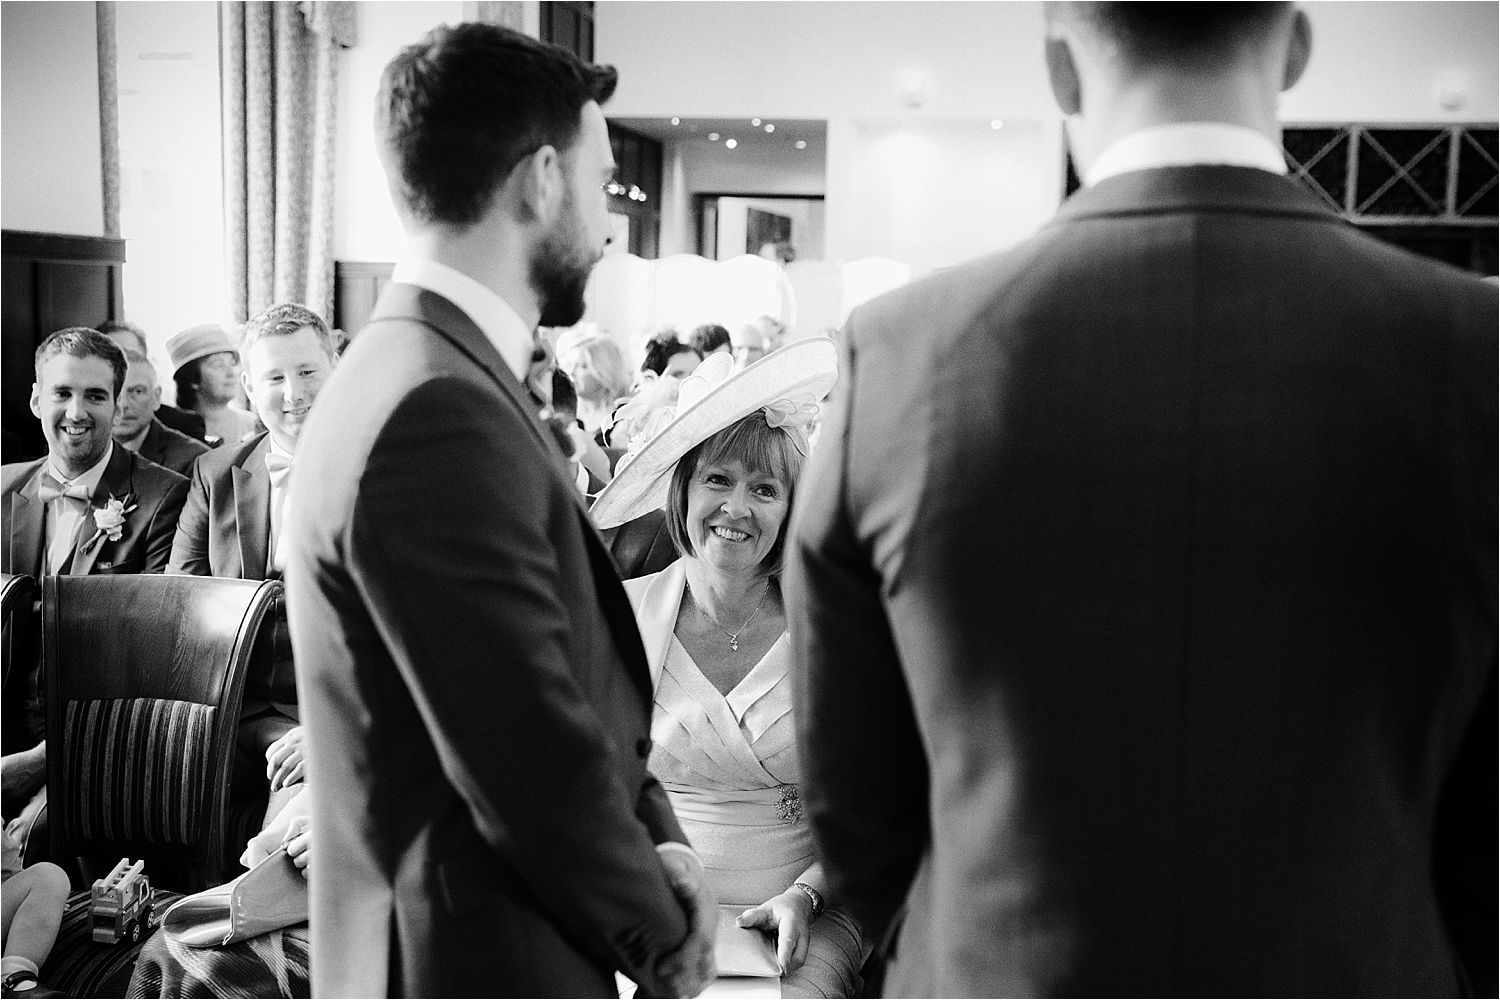 Bridegroom's mother and grrom exchange a smile prior to the wedding ceremony at the Low Wood Bay